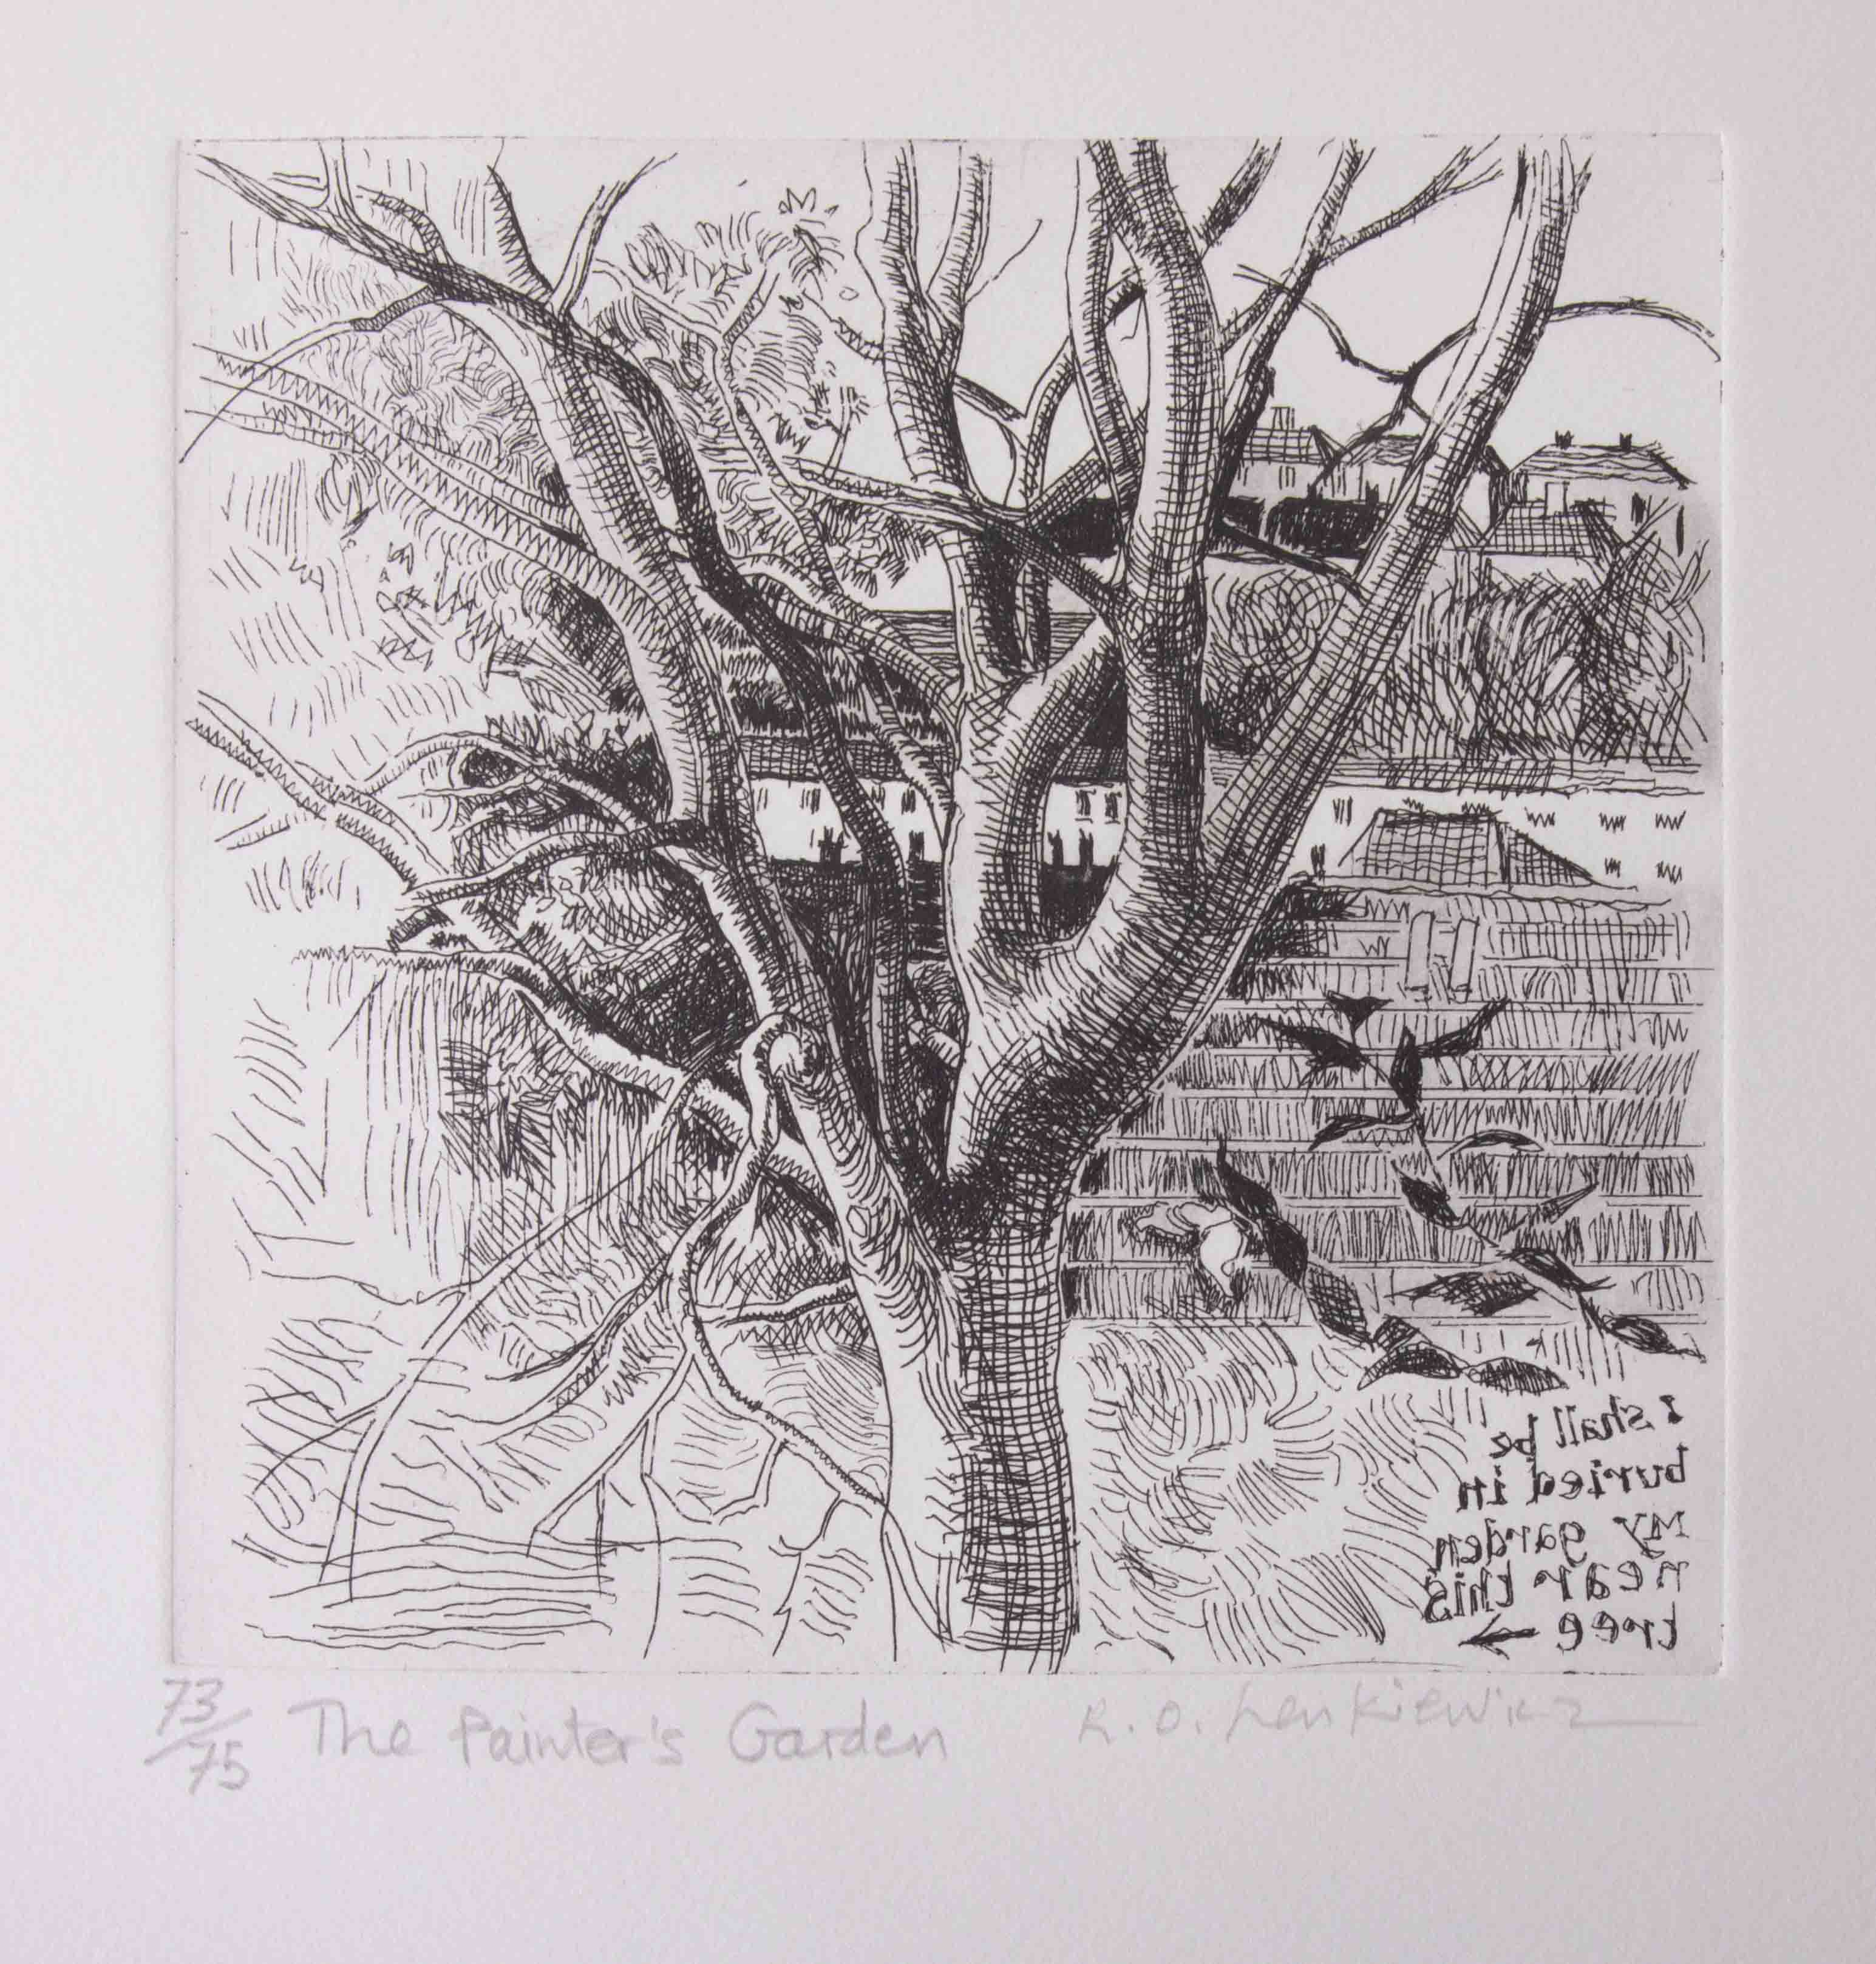 Robert Lenkiewicz (1941-2002) etching 'Painters Garden', signed, limited edition print 73/75, - Image 2 of 2